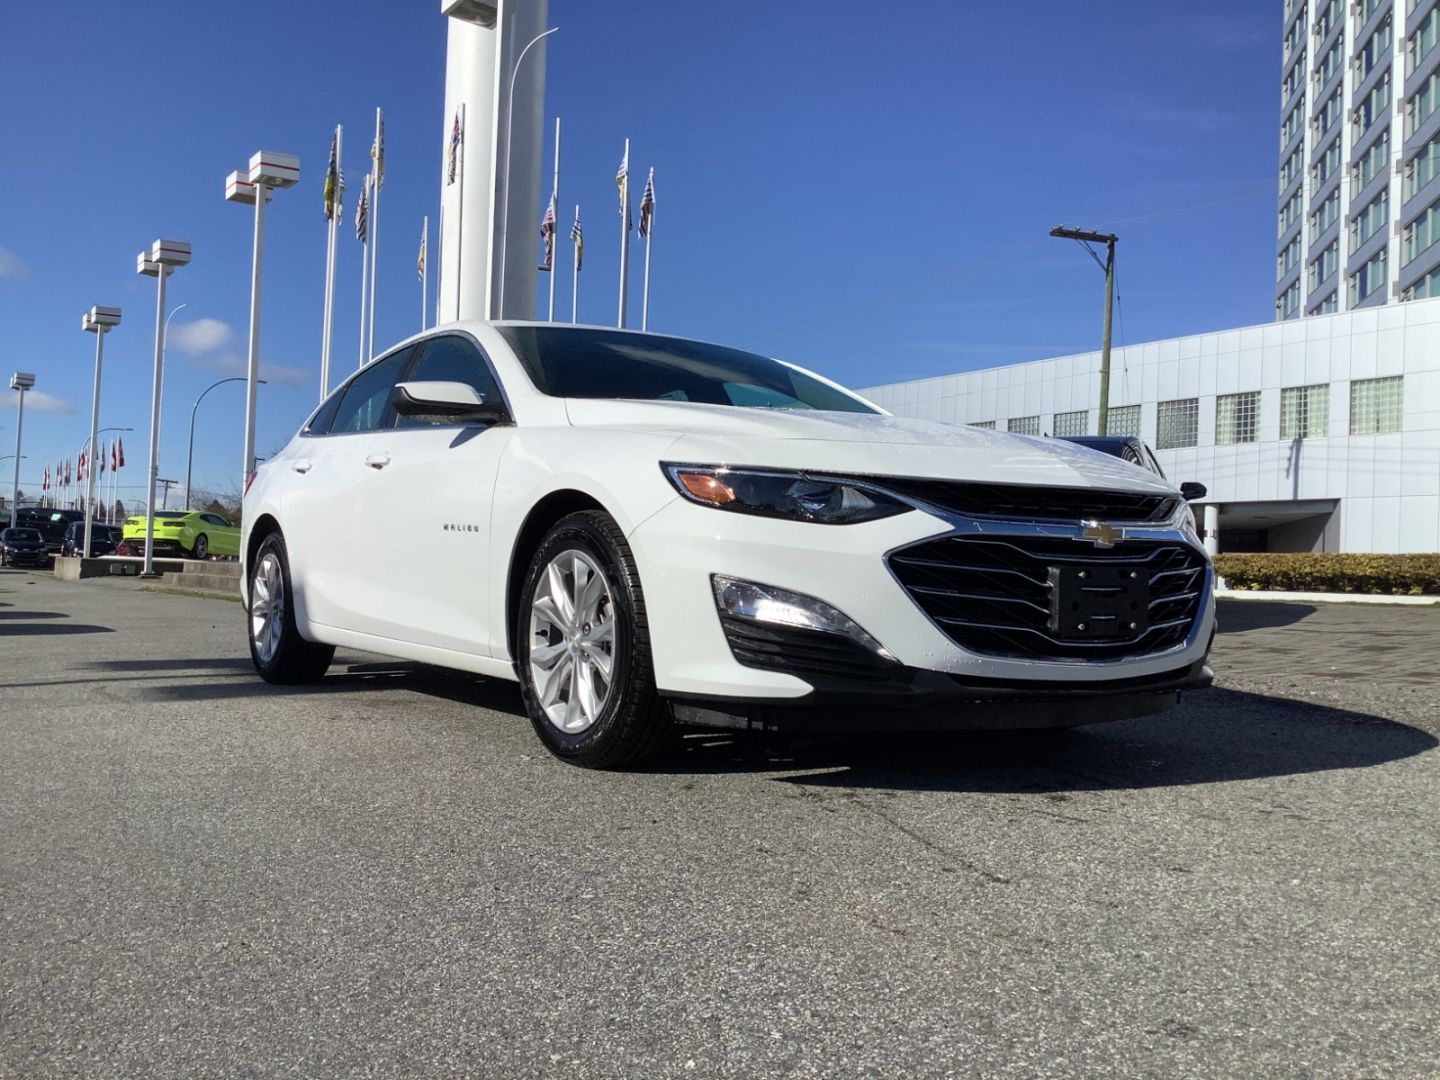 2020 Chevrolet Malibu LT for sale in Surrey, British Columbia